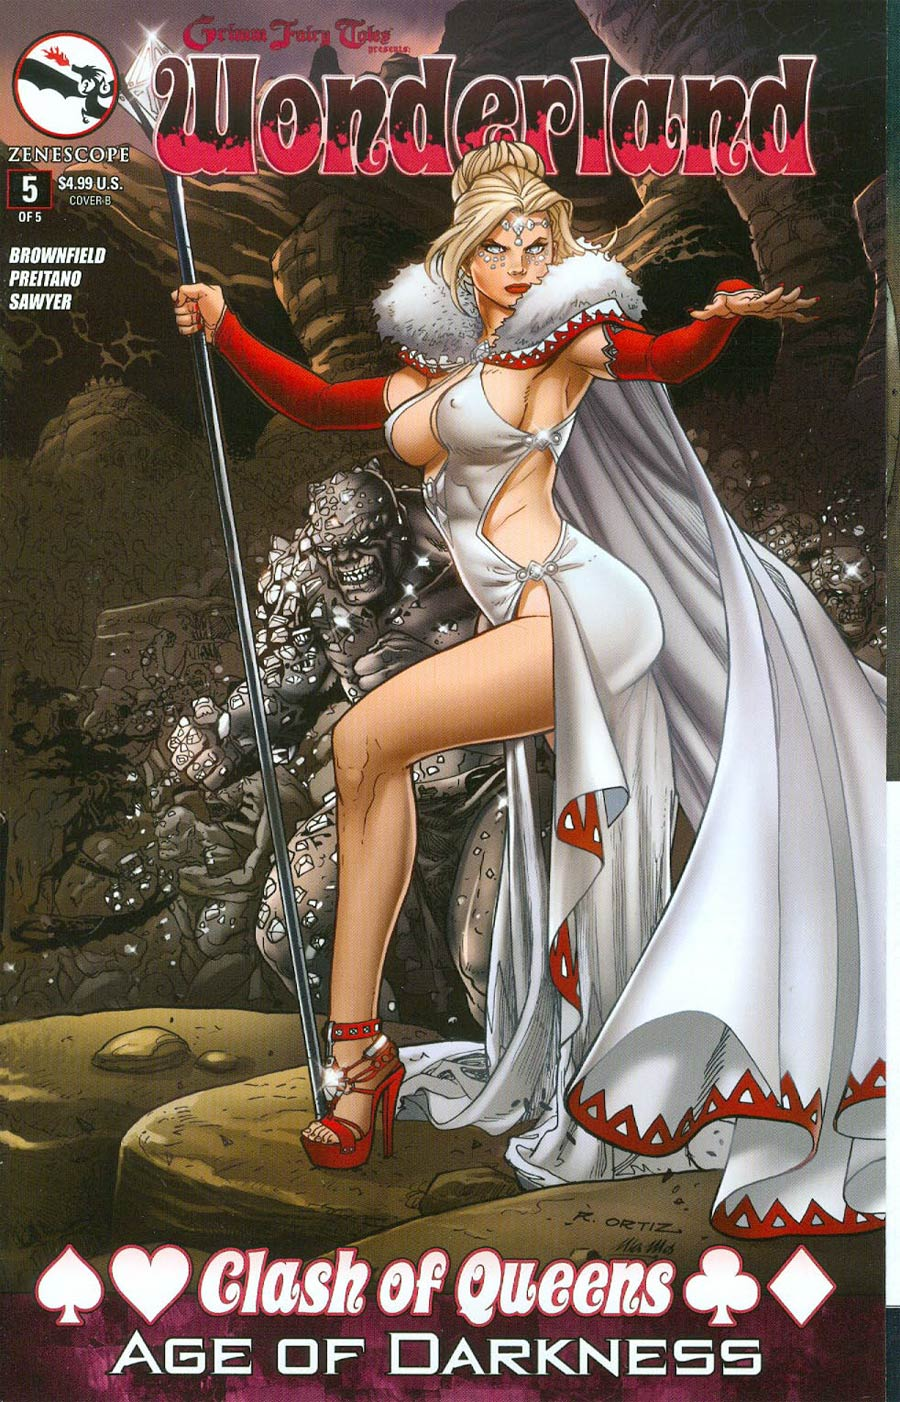 Grimm Fairy Tales Presents Wonderland Clash Of Queens #5 Cover D Richard Ortiz Gatefold (Age Of Darkness Tie-In) (Cover Misprinted As Cover B)